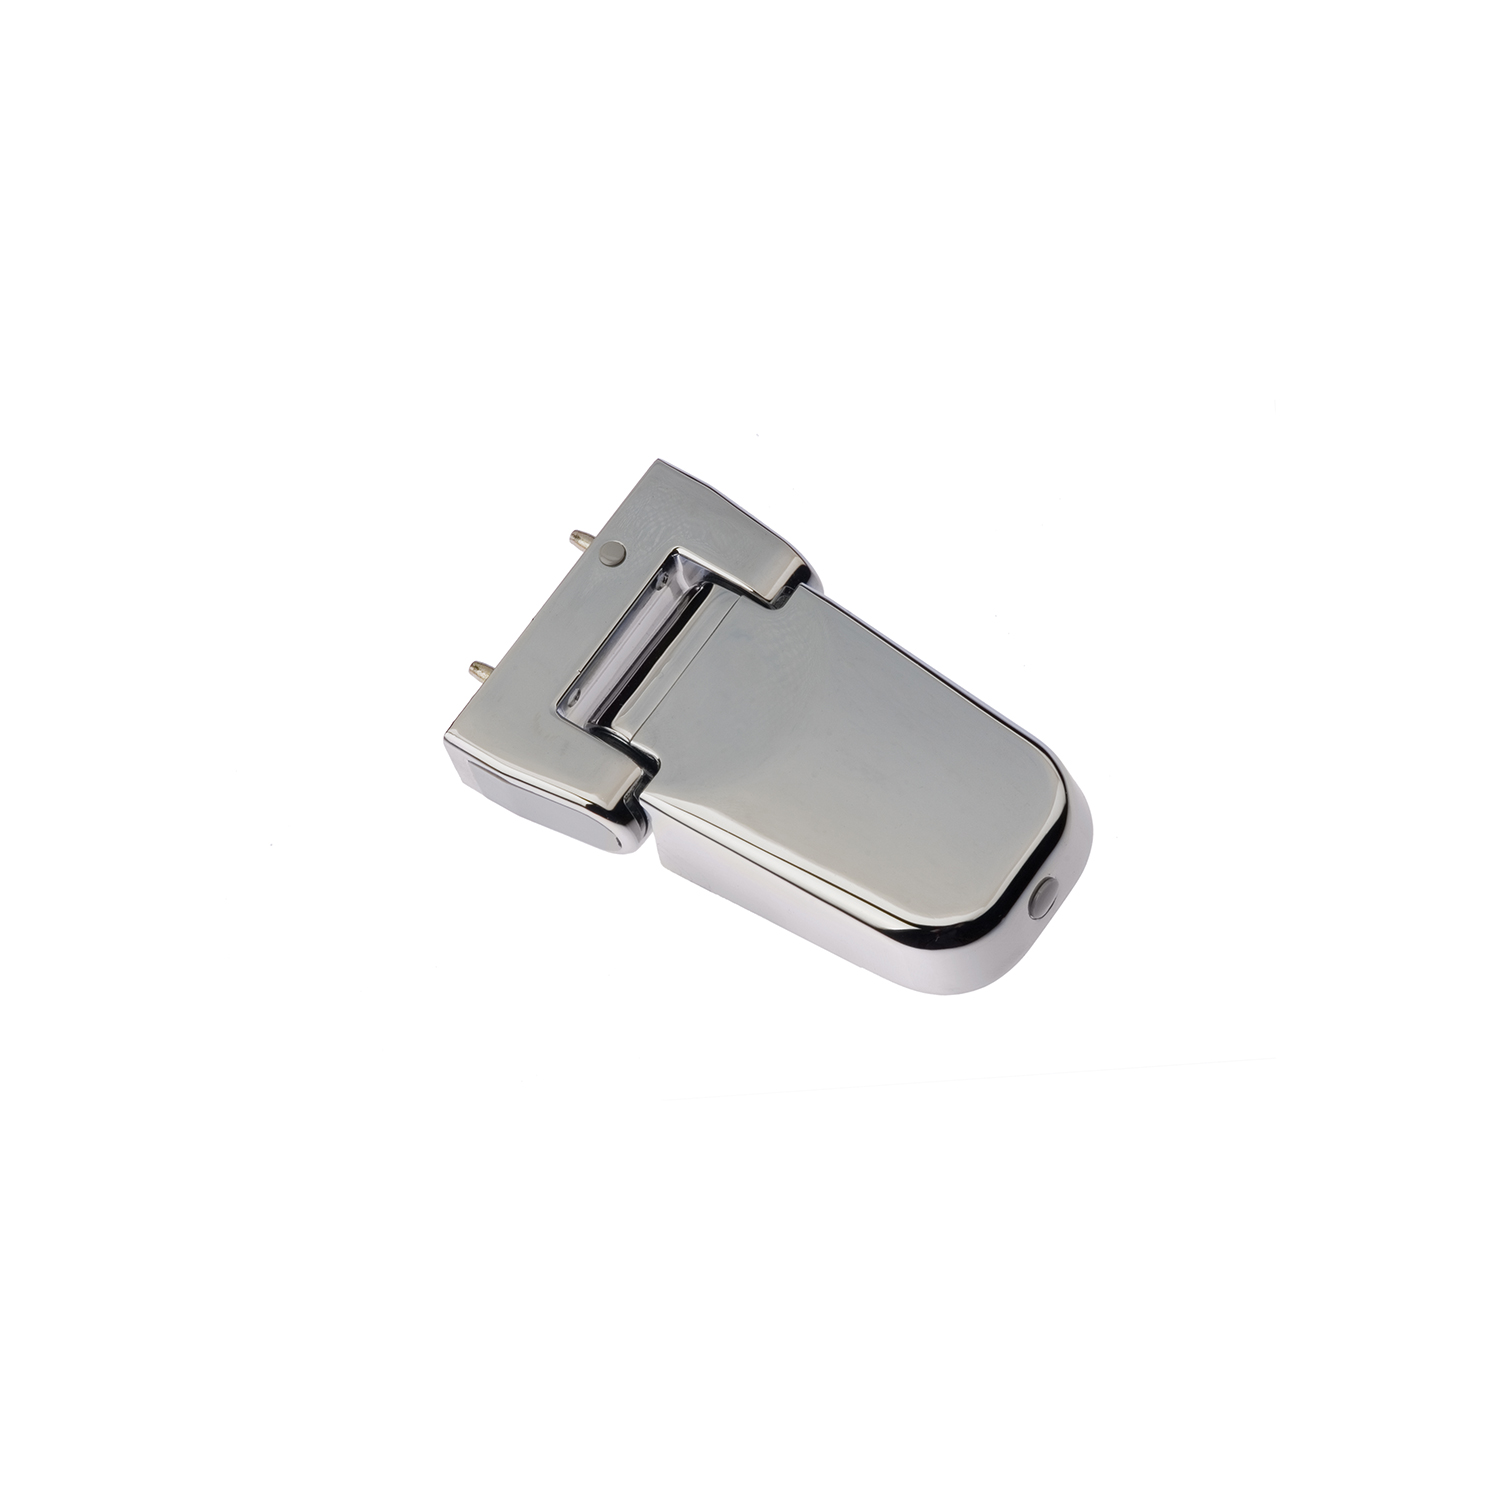 Maxim High Security Flag Hinge for PVCu Doors